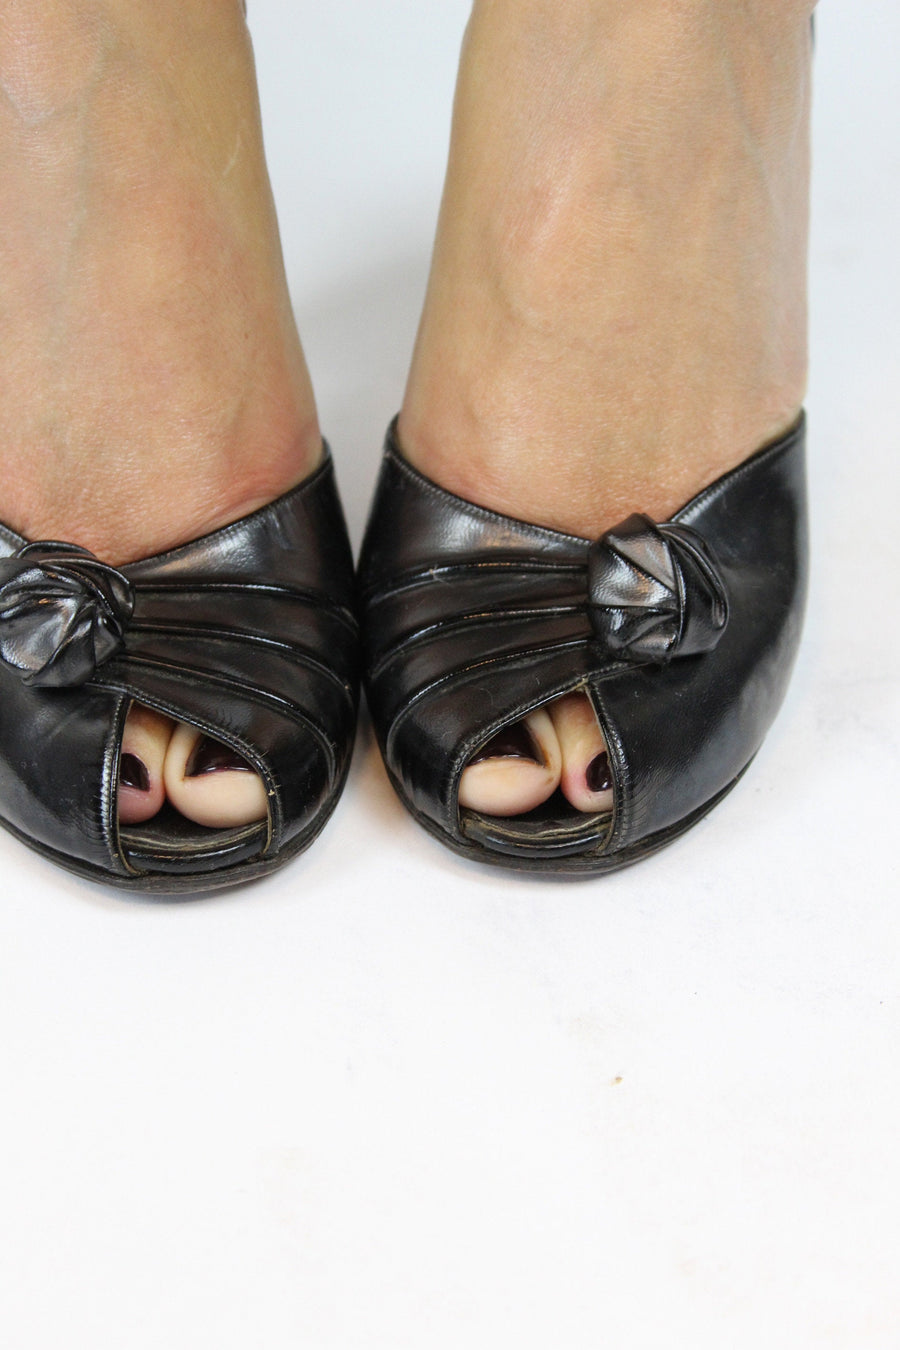 1950s rosette peep toe pumps size 5 us | vintage palizzio new york shoes